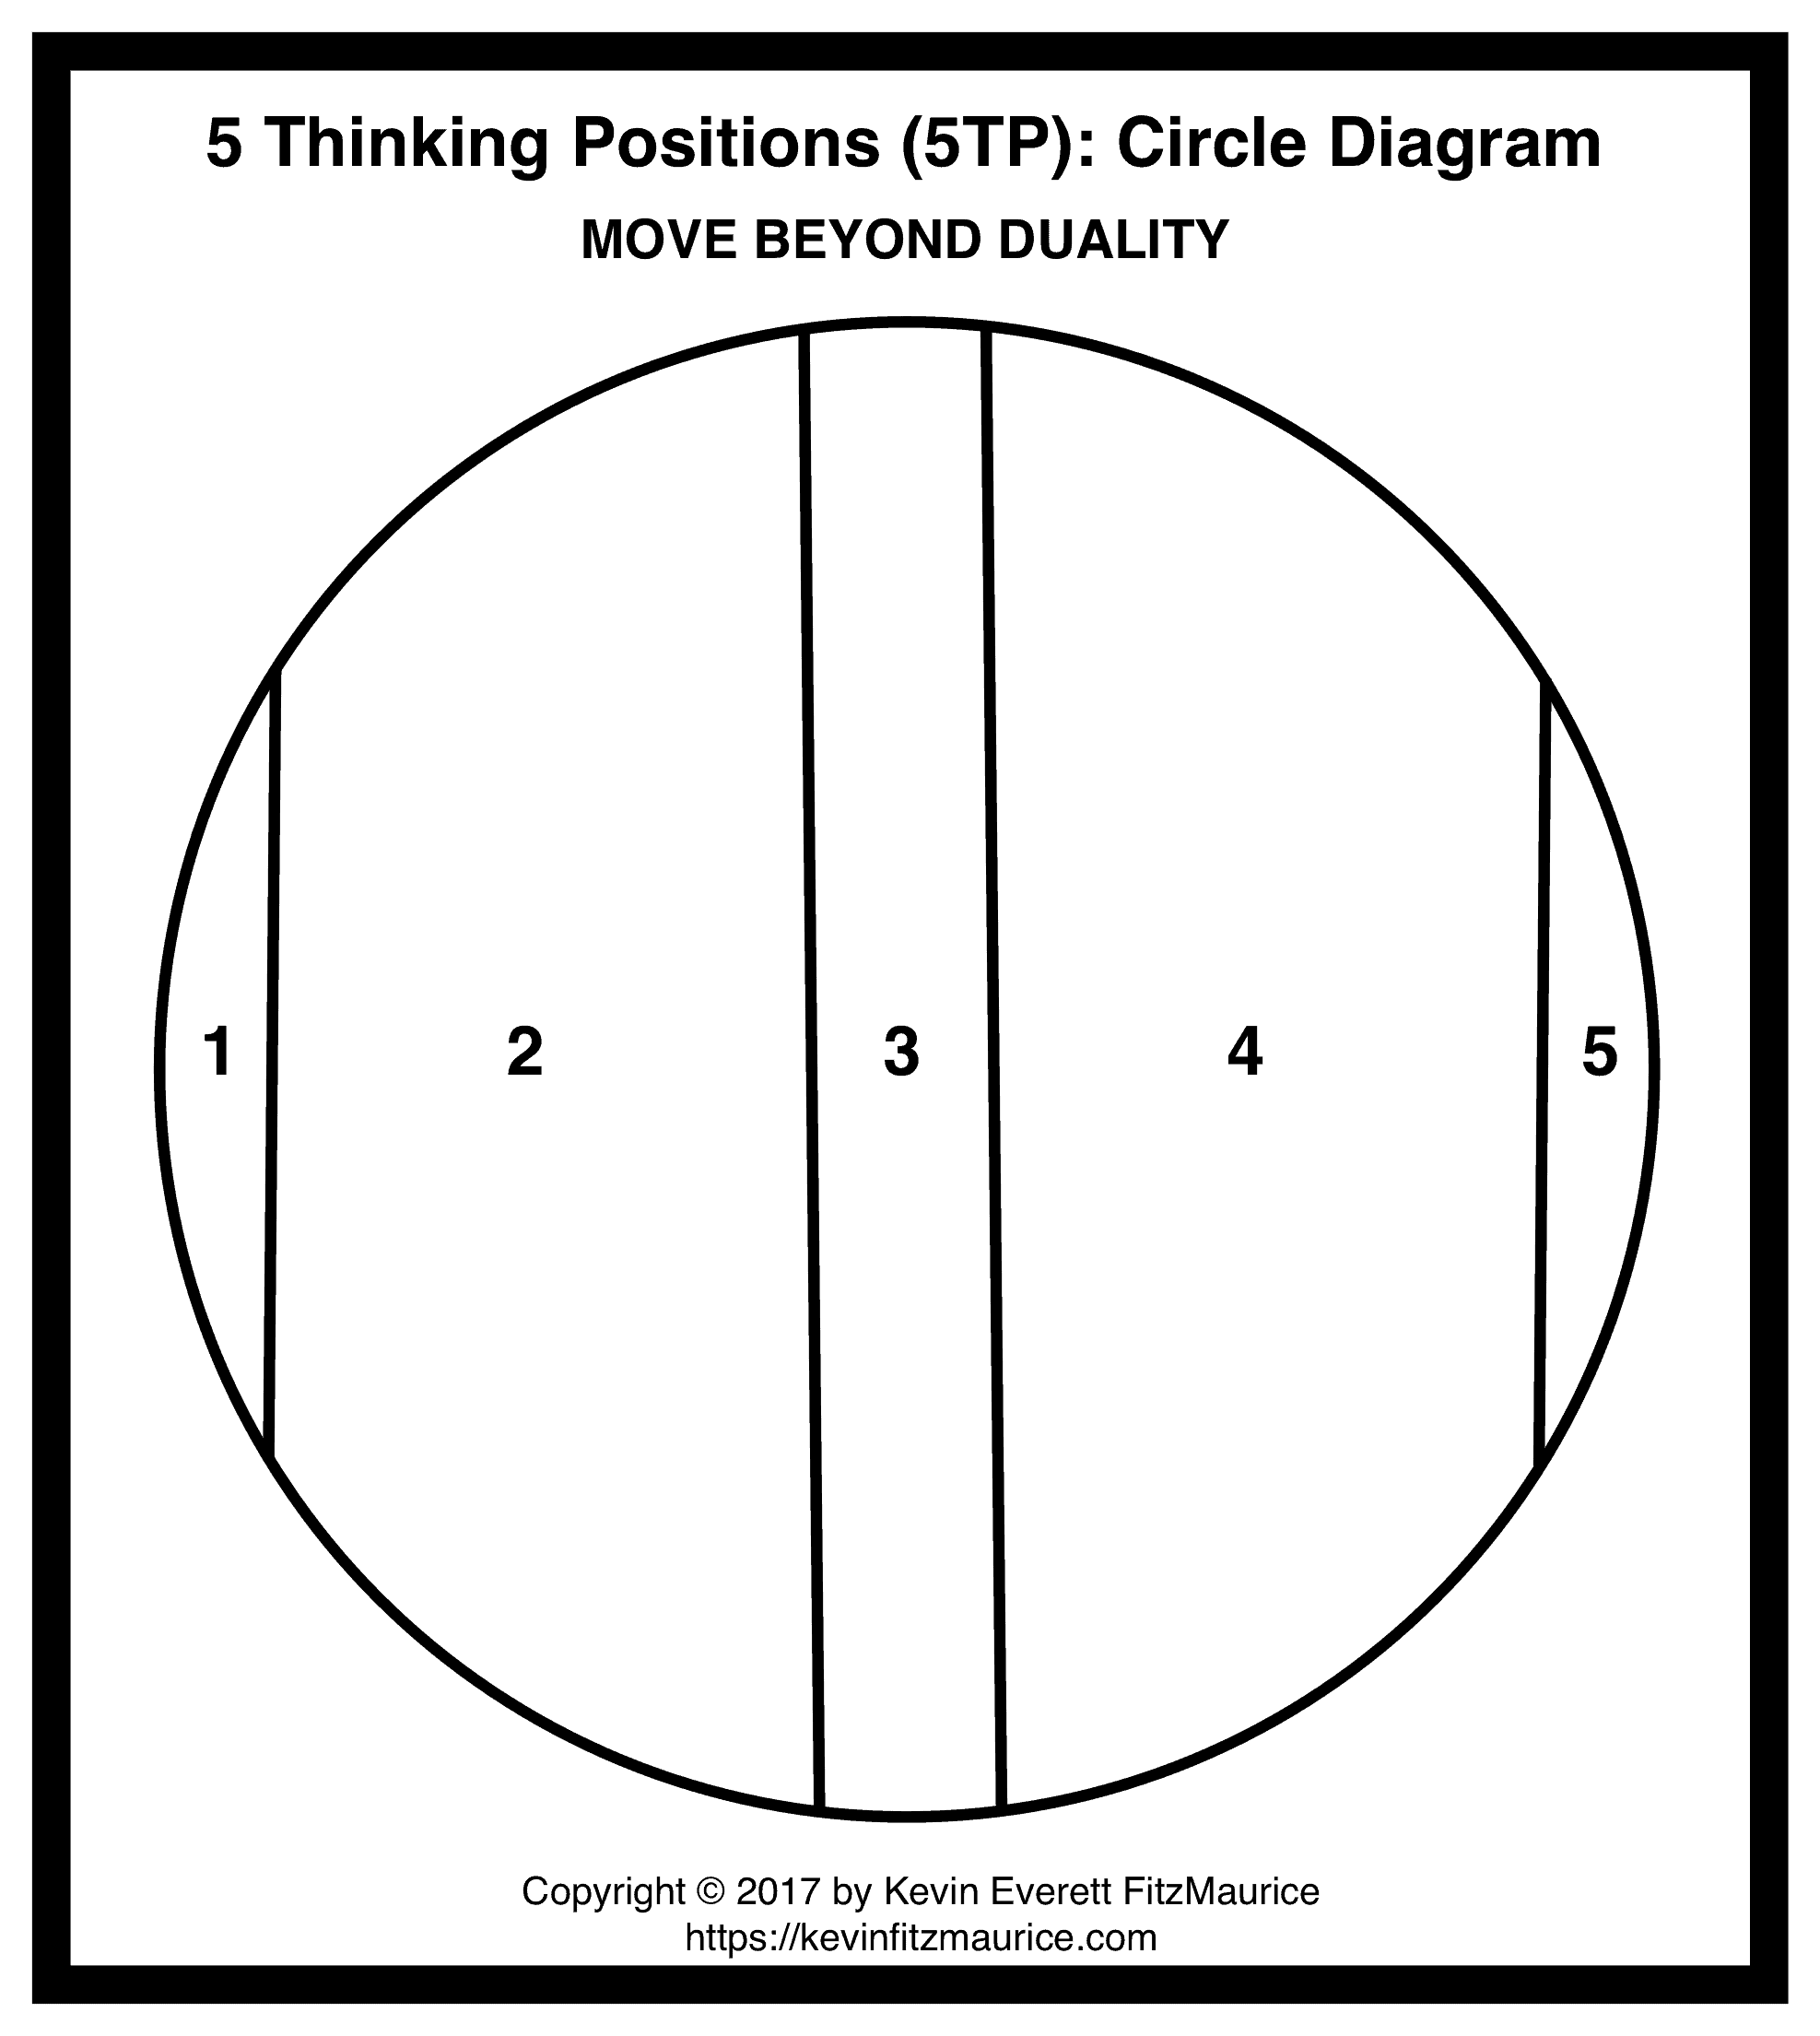 Simple Circle Diagram of 5TP